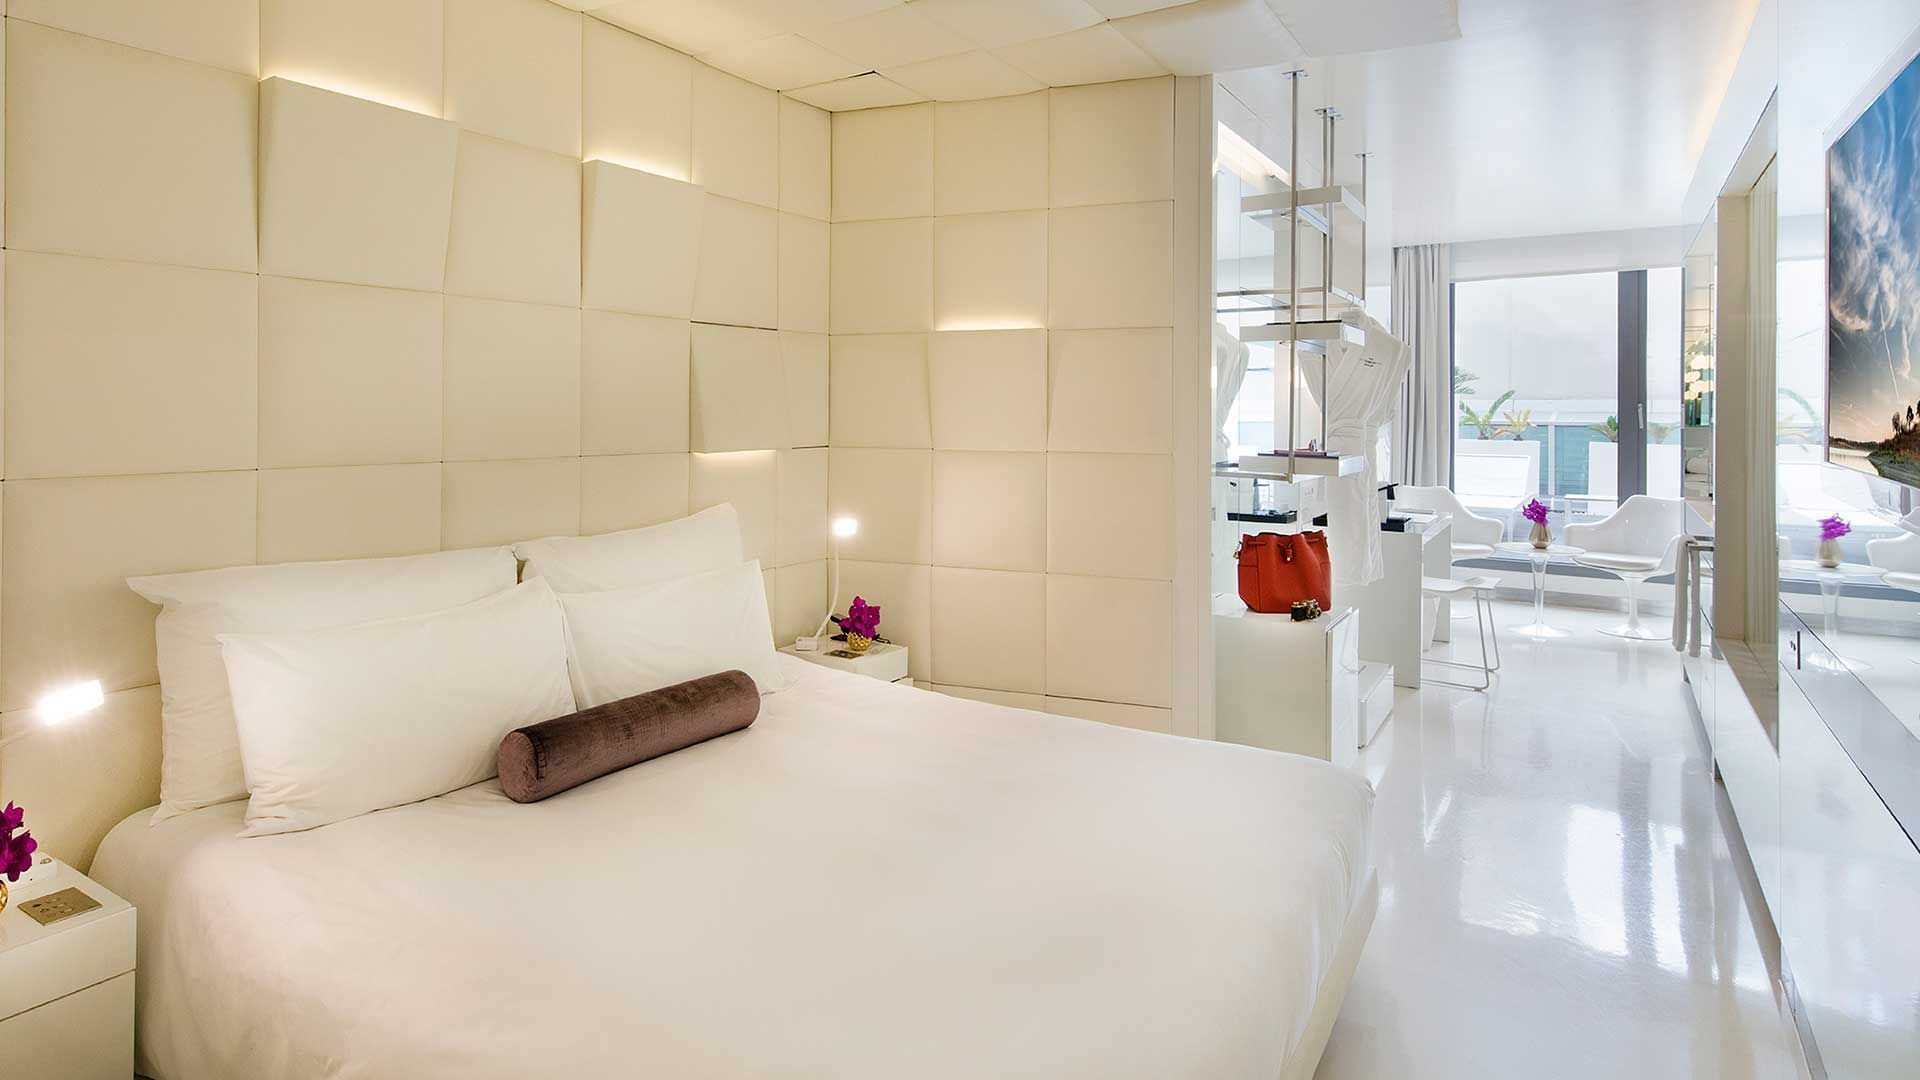 The Mirror Barcelona Modern Boutique Hotel In Barcelona With